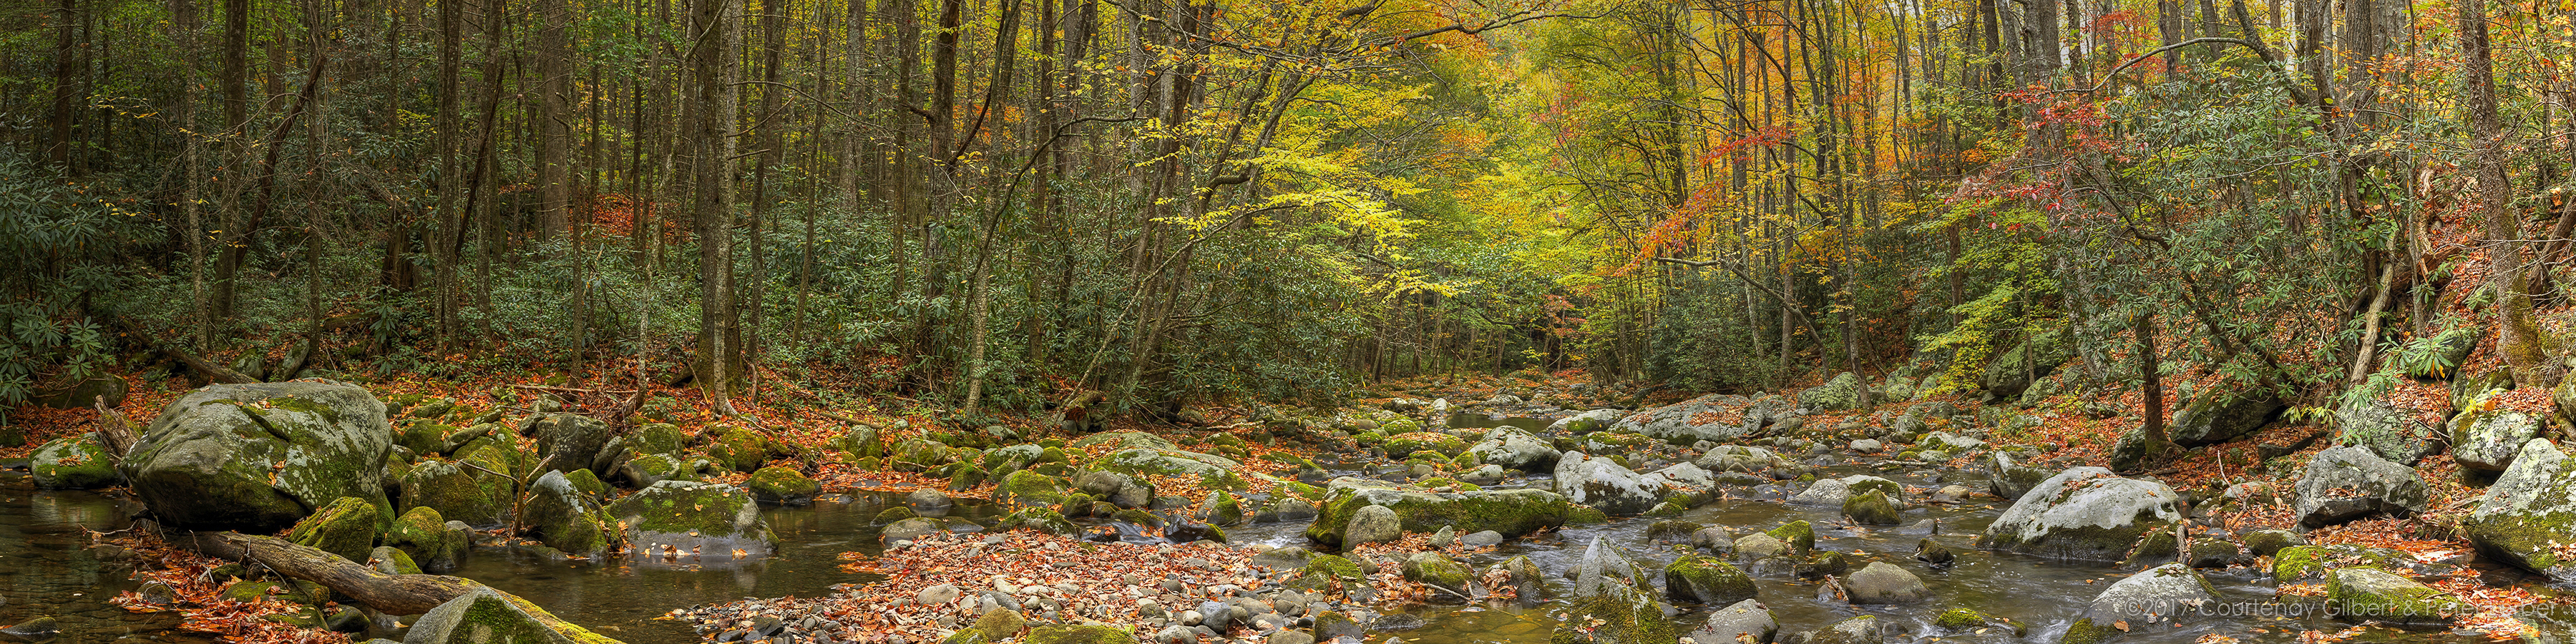 Little Prong Middle River in Autumn